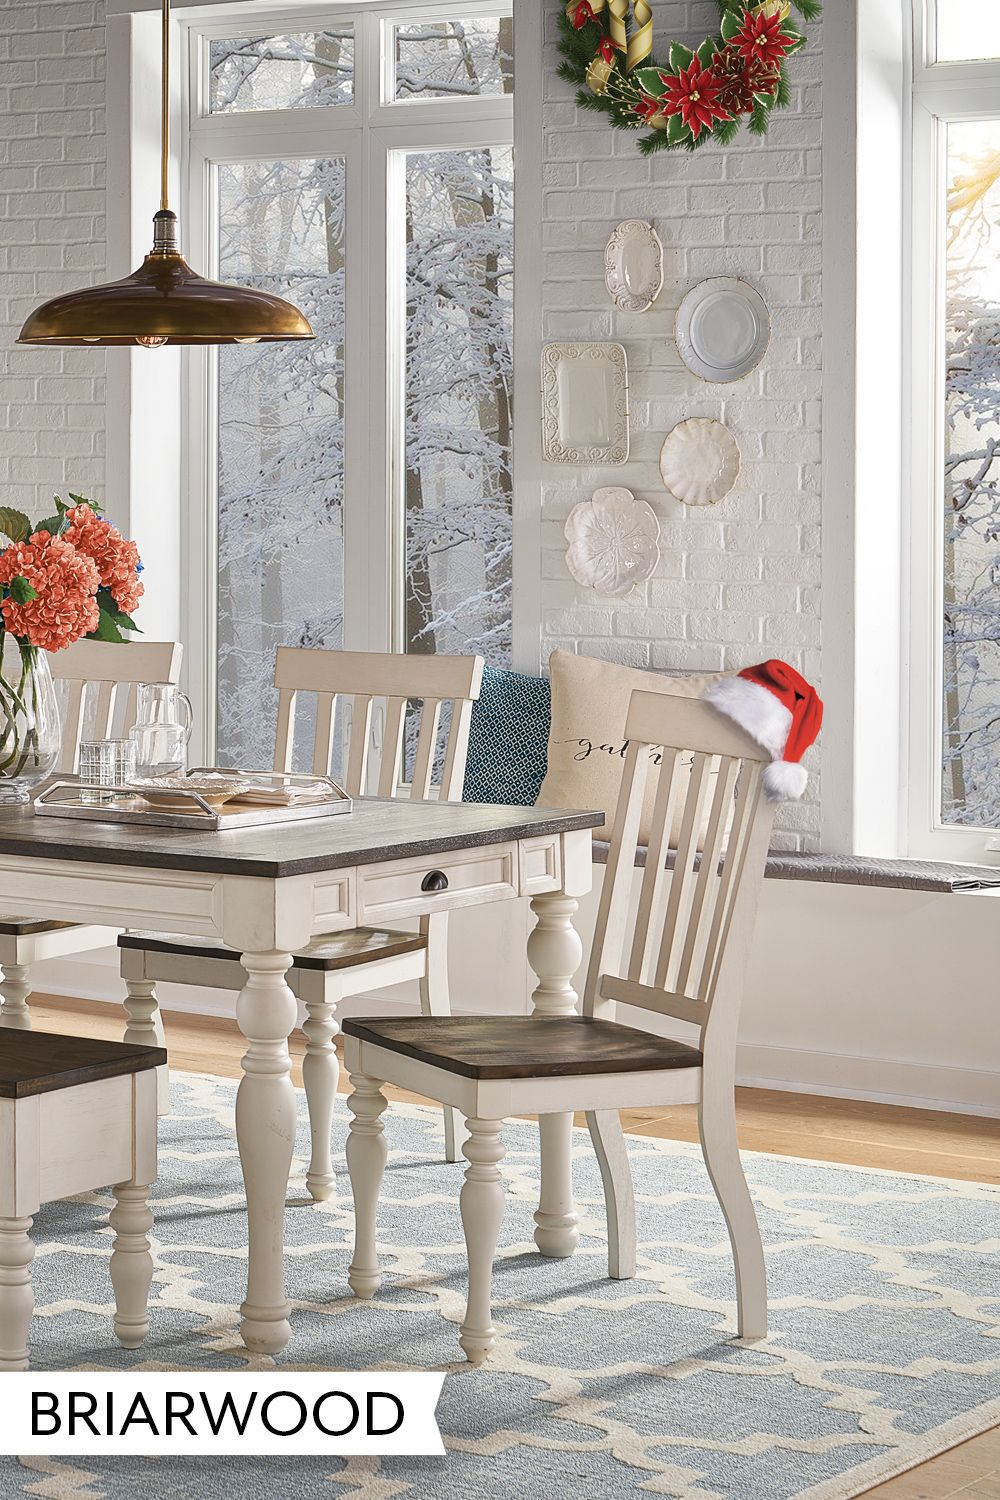 Briarwood 5 Piece Counter Dining Set Farmhouse Style Chairs Home Decor Stylish Seating